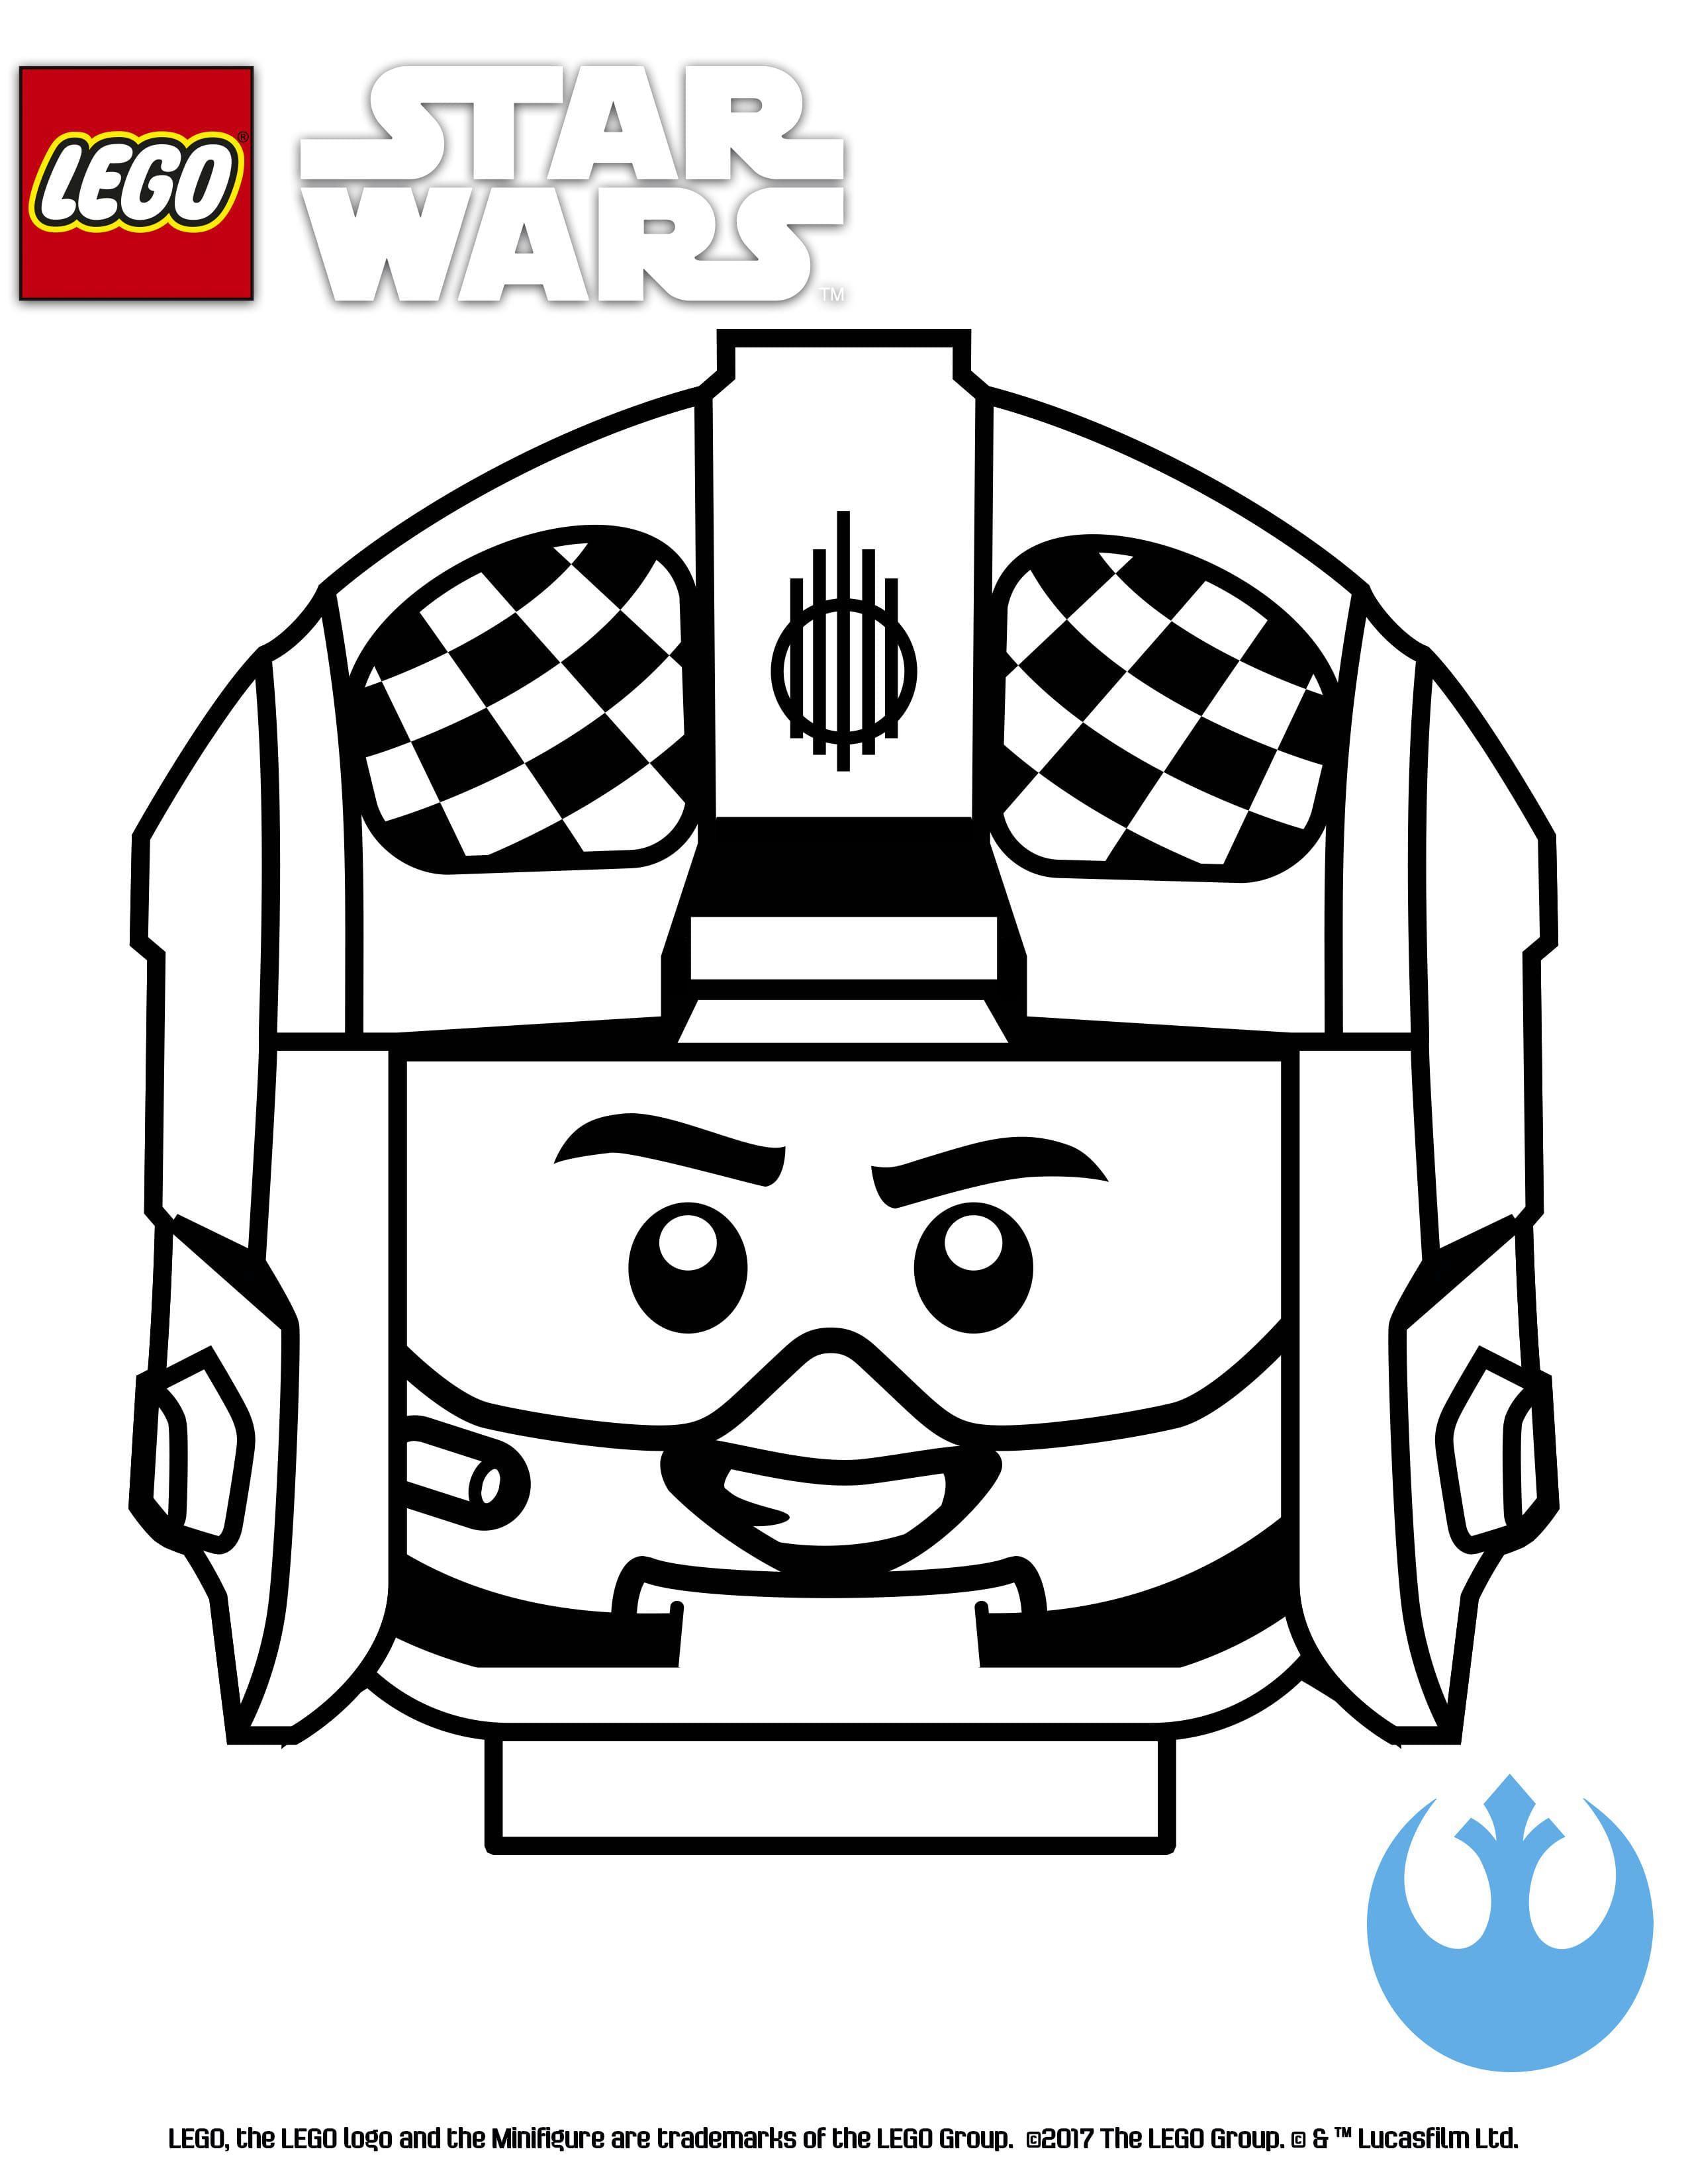 Lego Star Wars Coloring Page Blue Suadron Lego Star Wars Lego Coloring Pages Star Wars Spaceships